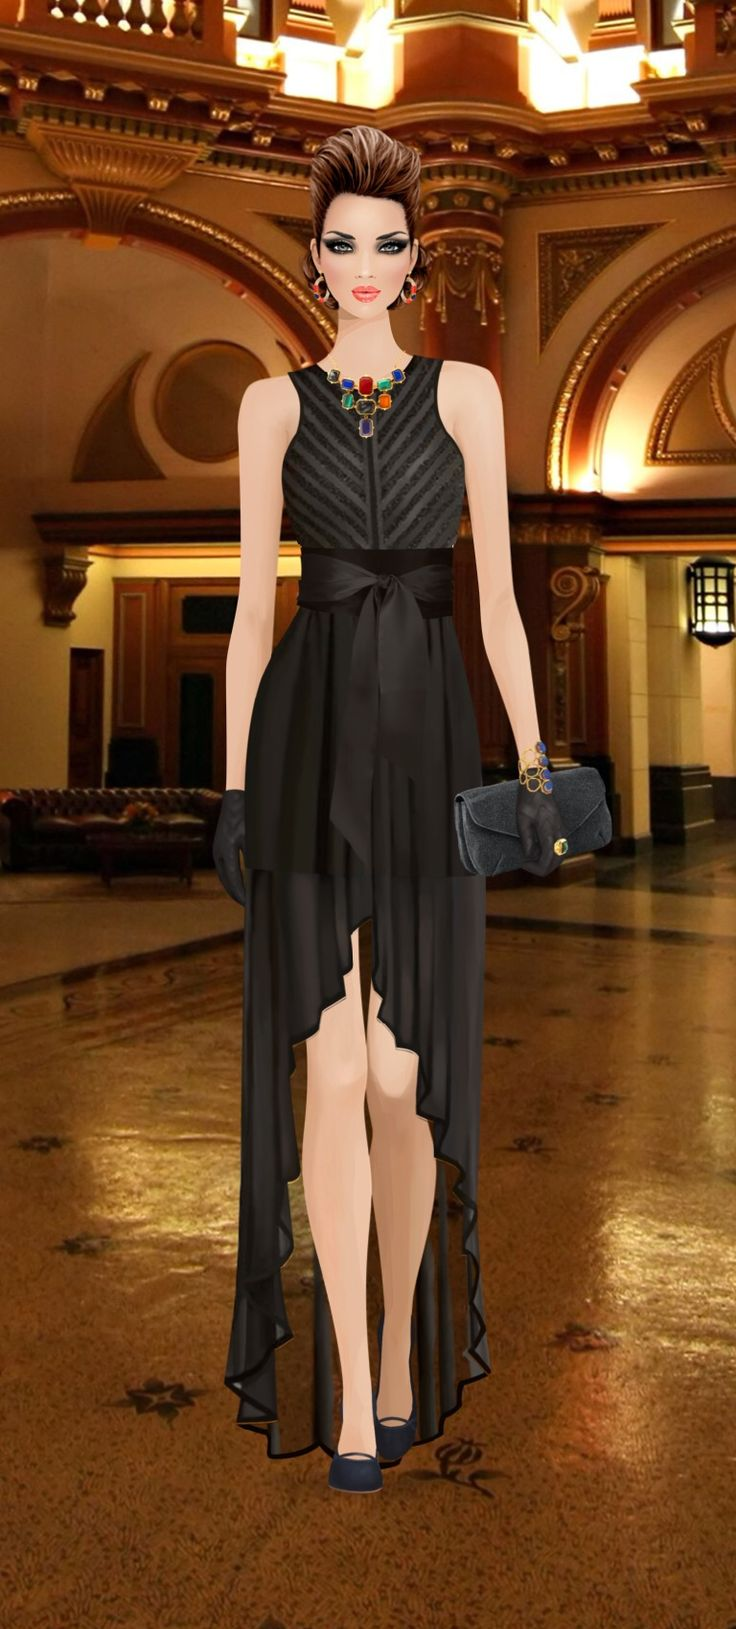 Fashion Game Fashion Game Pinterest Fashion Games Game And Fashion